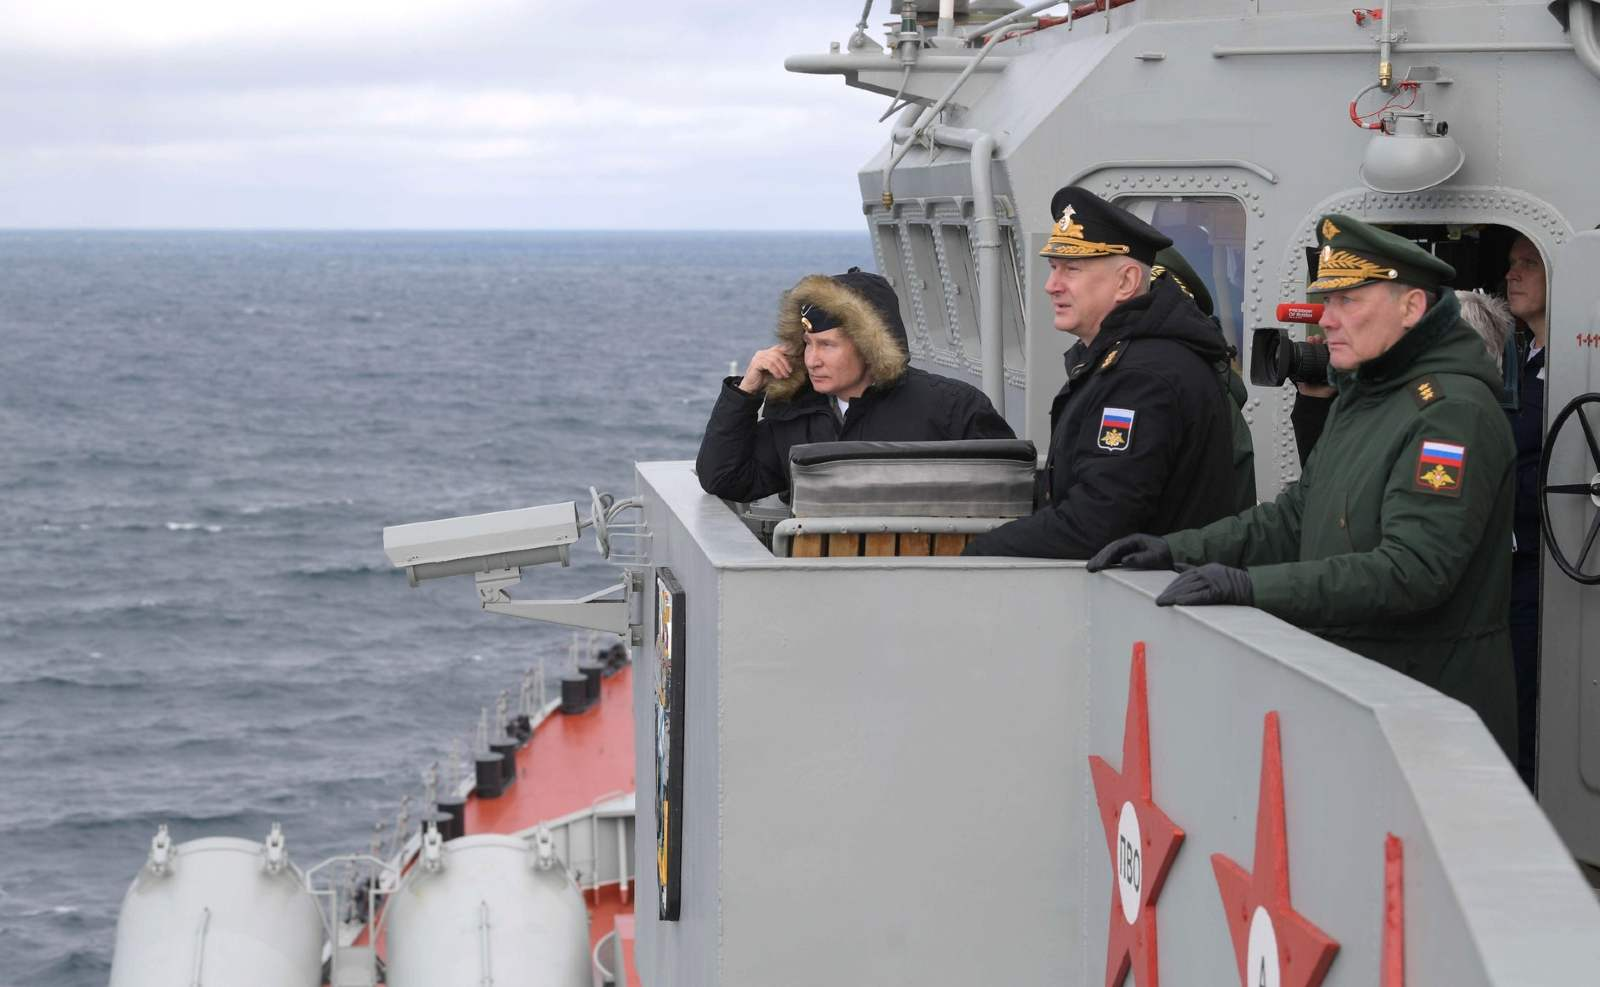 Joint exercises of the Northern and Black Sea fleets. With Commander-in-Chief of the Navy Nikolai Yevmenov, centre, and Commander of the Southern Military District Forces Alexander Dvornikov.